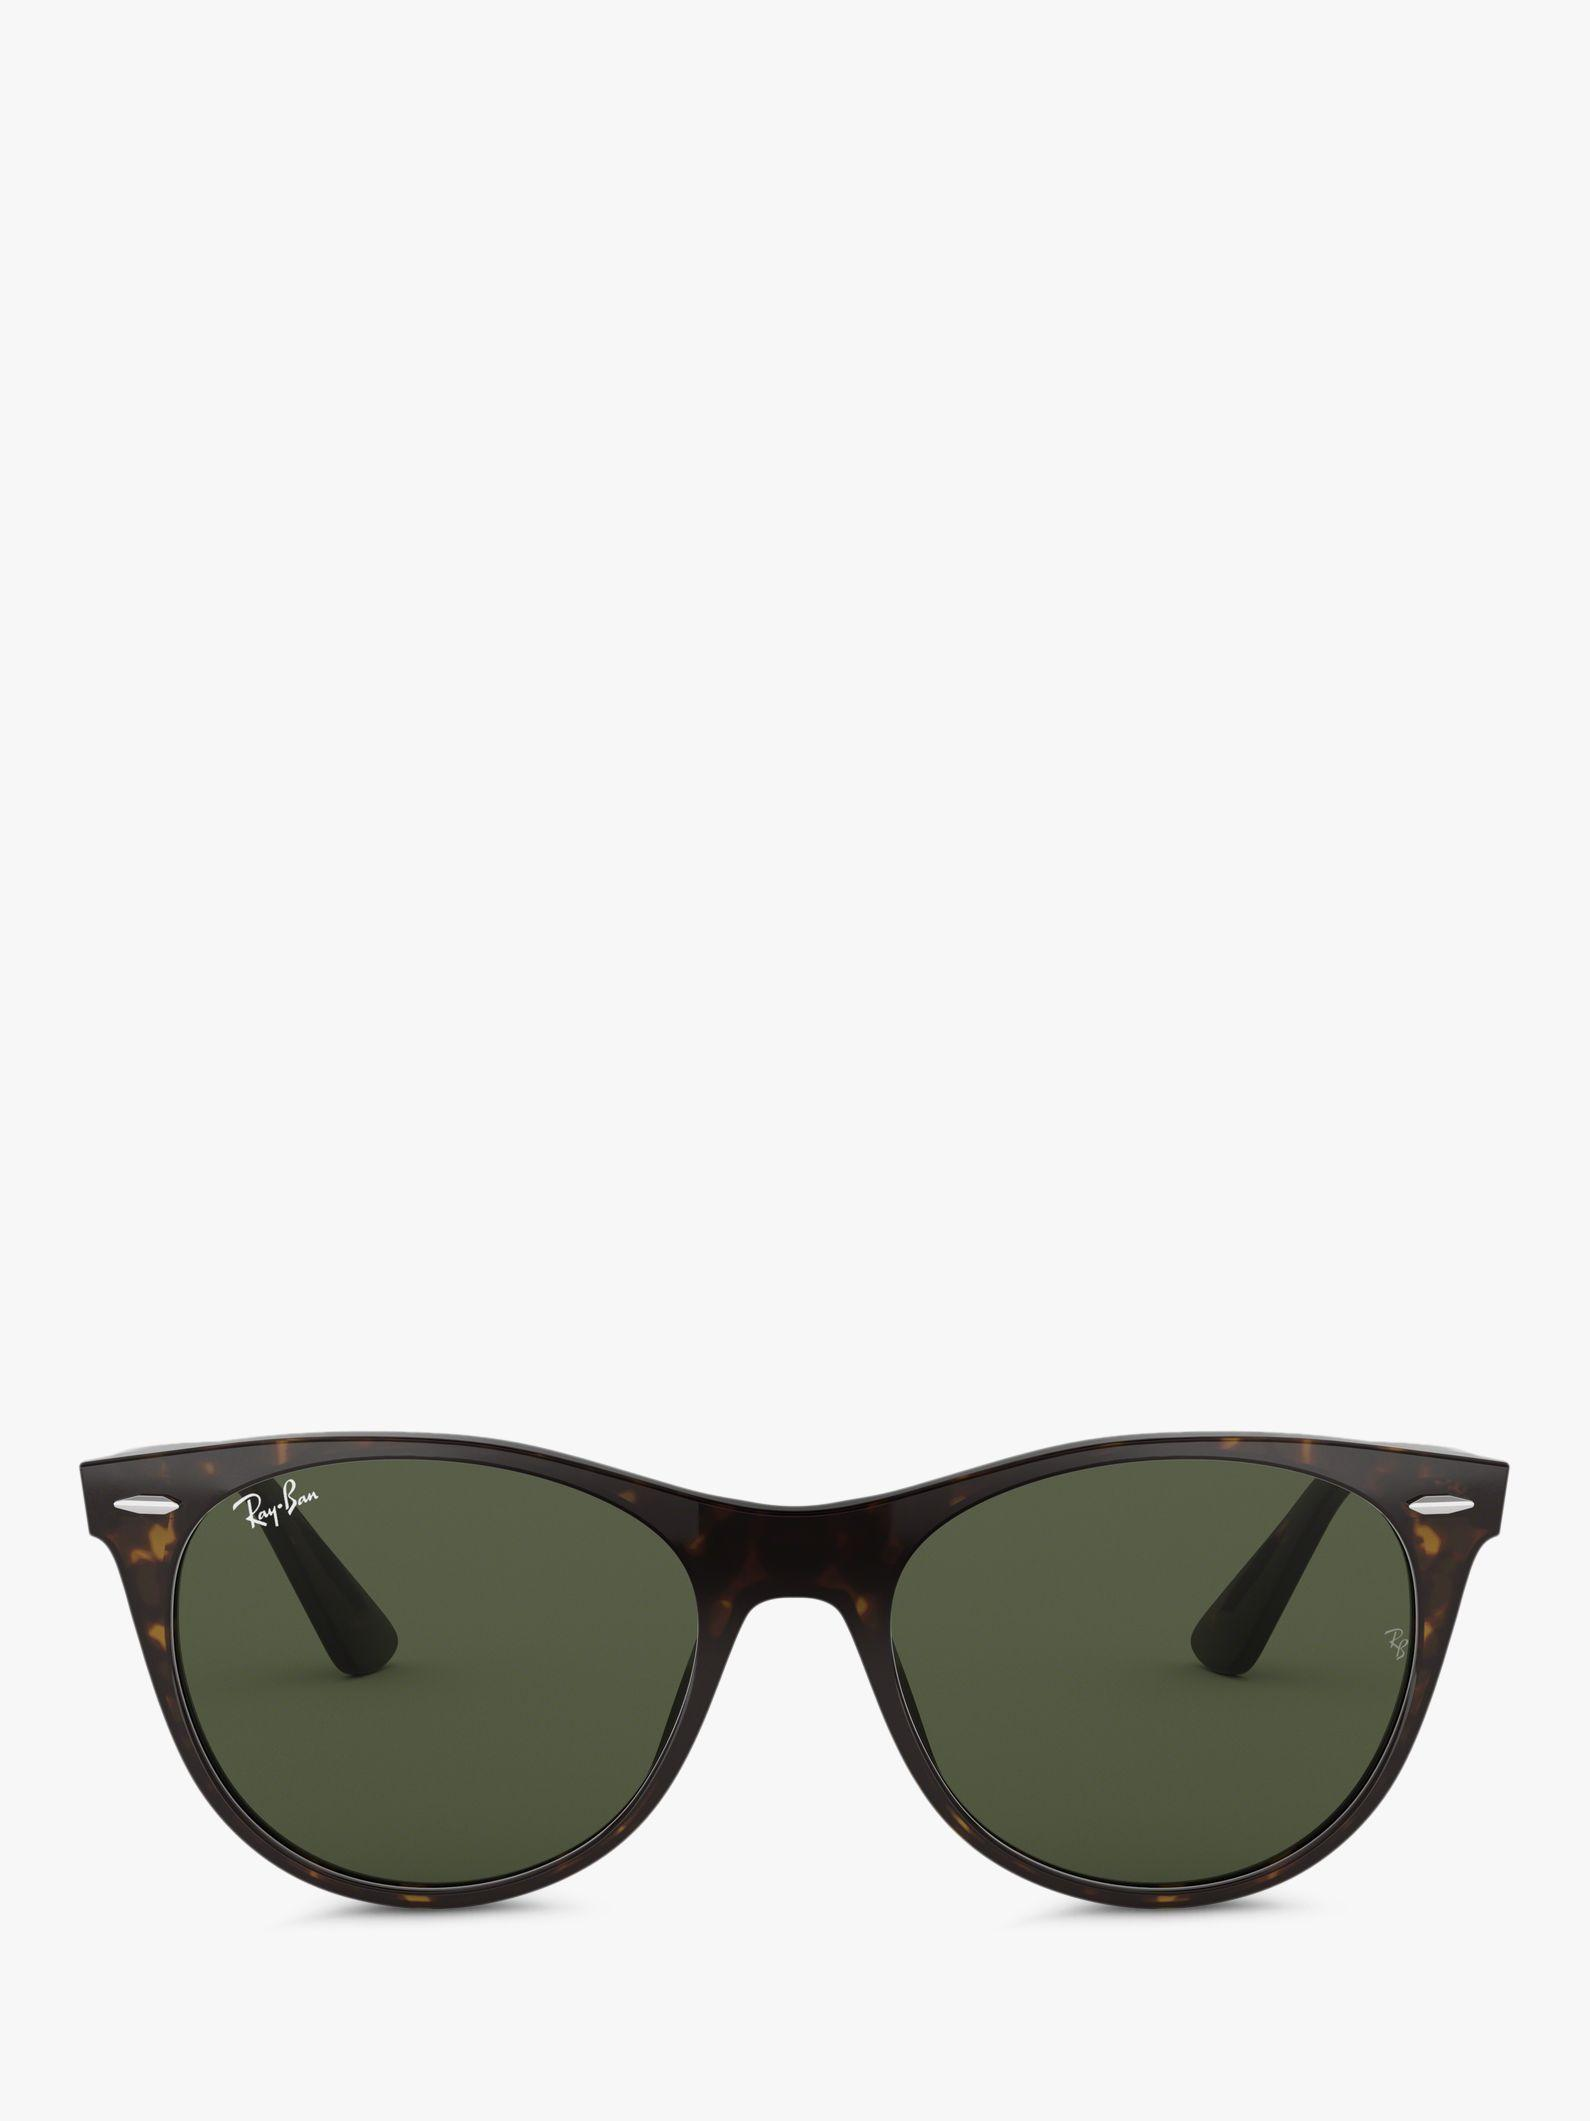 a77878fe87 Ray-Ban - Green Rb2185 Women s Wayfarer Ii Evolve Sunglasses - Lyst. View  fullscreen